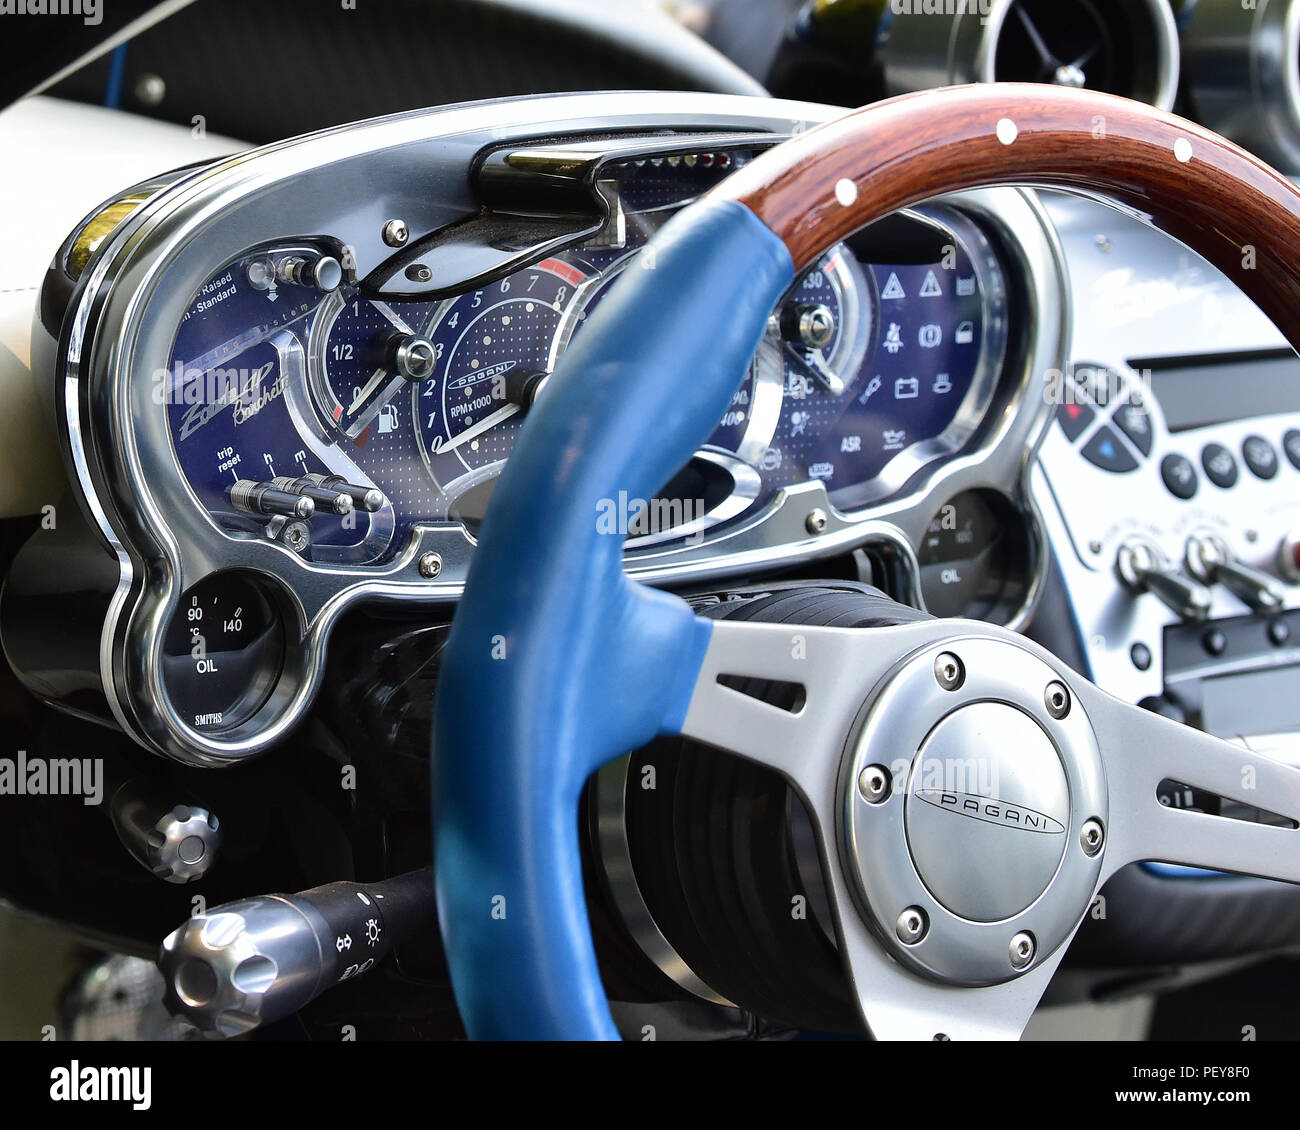 Pagani Zonda Hp Barchetta High Resolution Stock Photography And Images Alamy